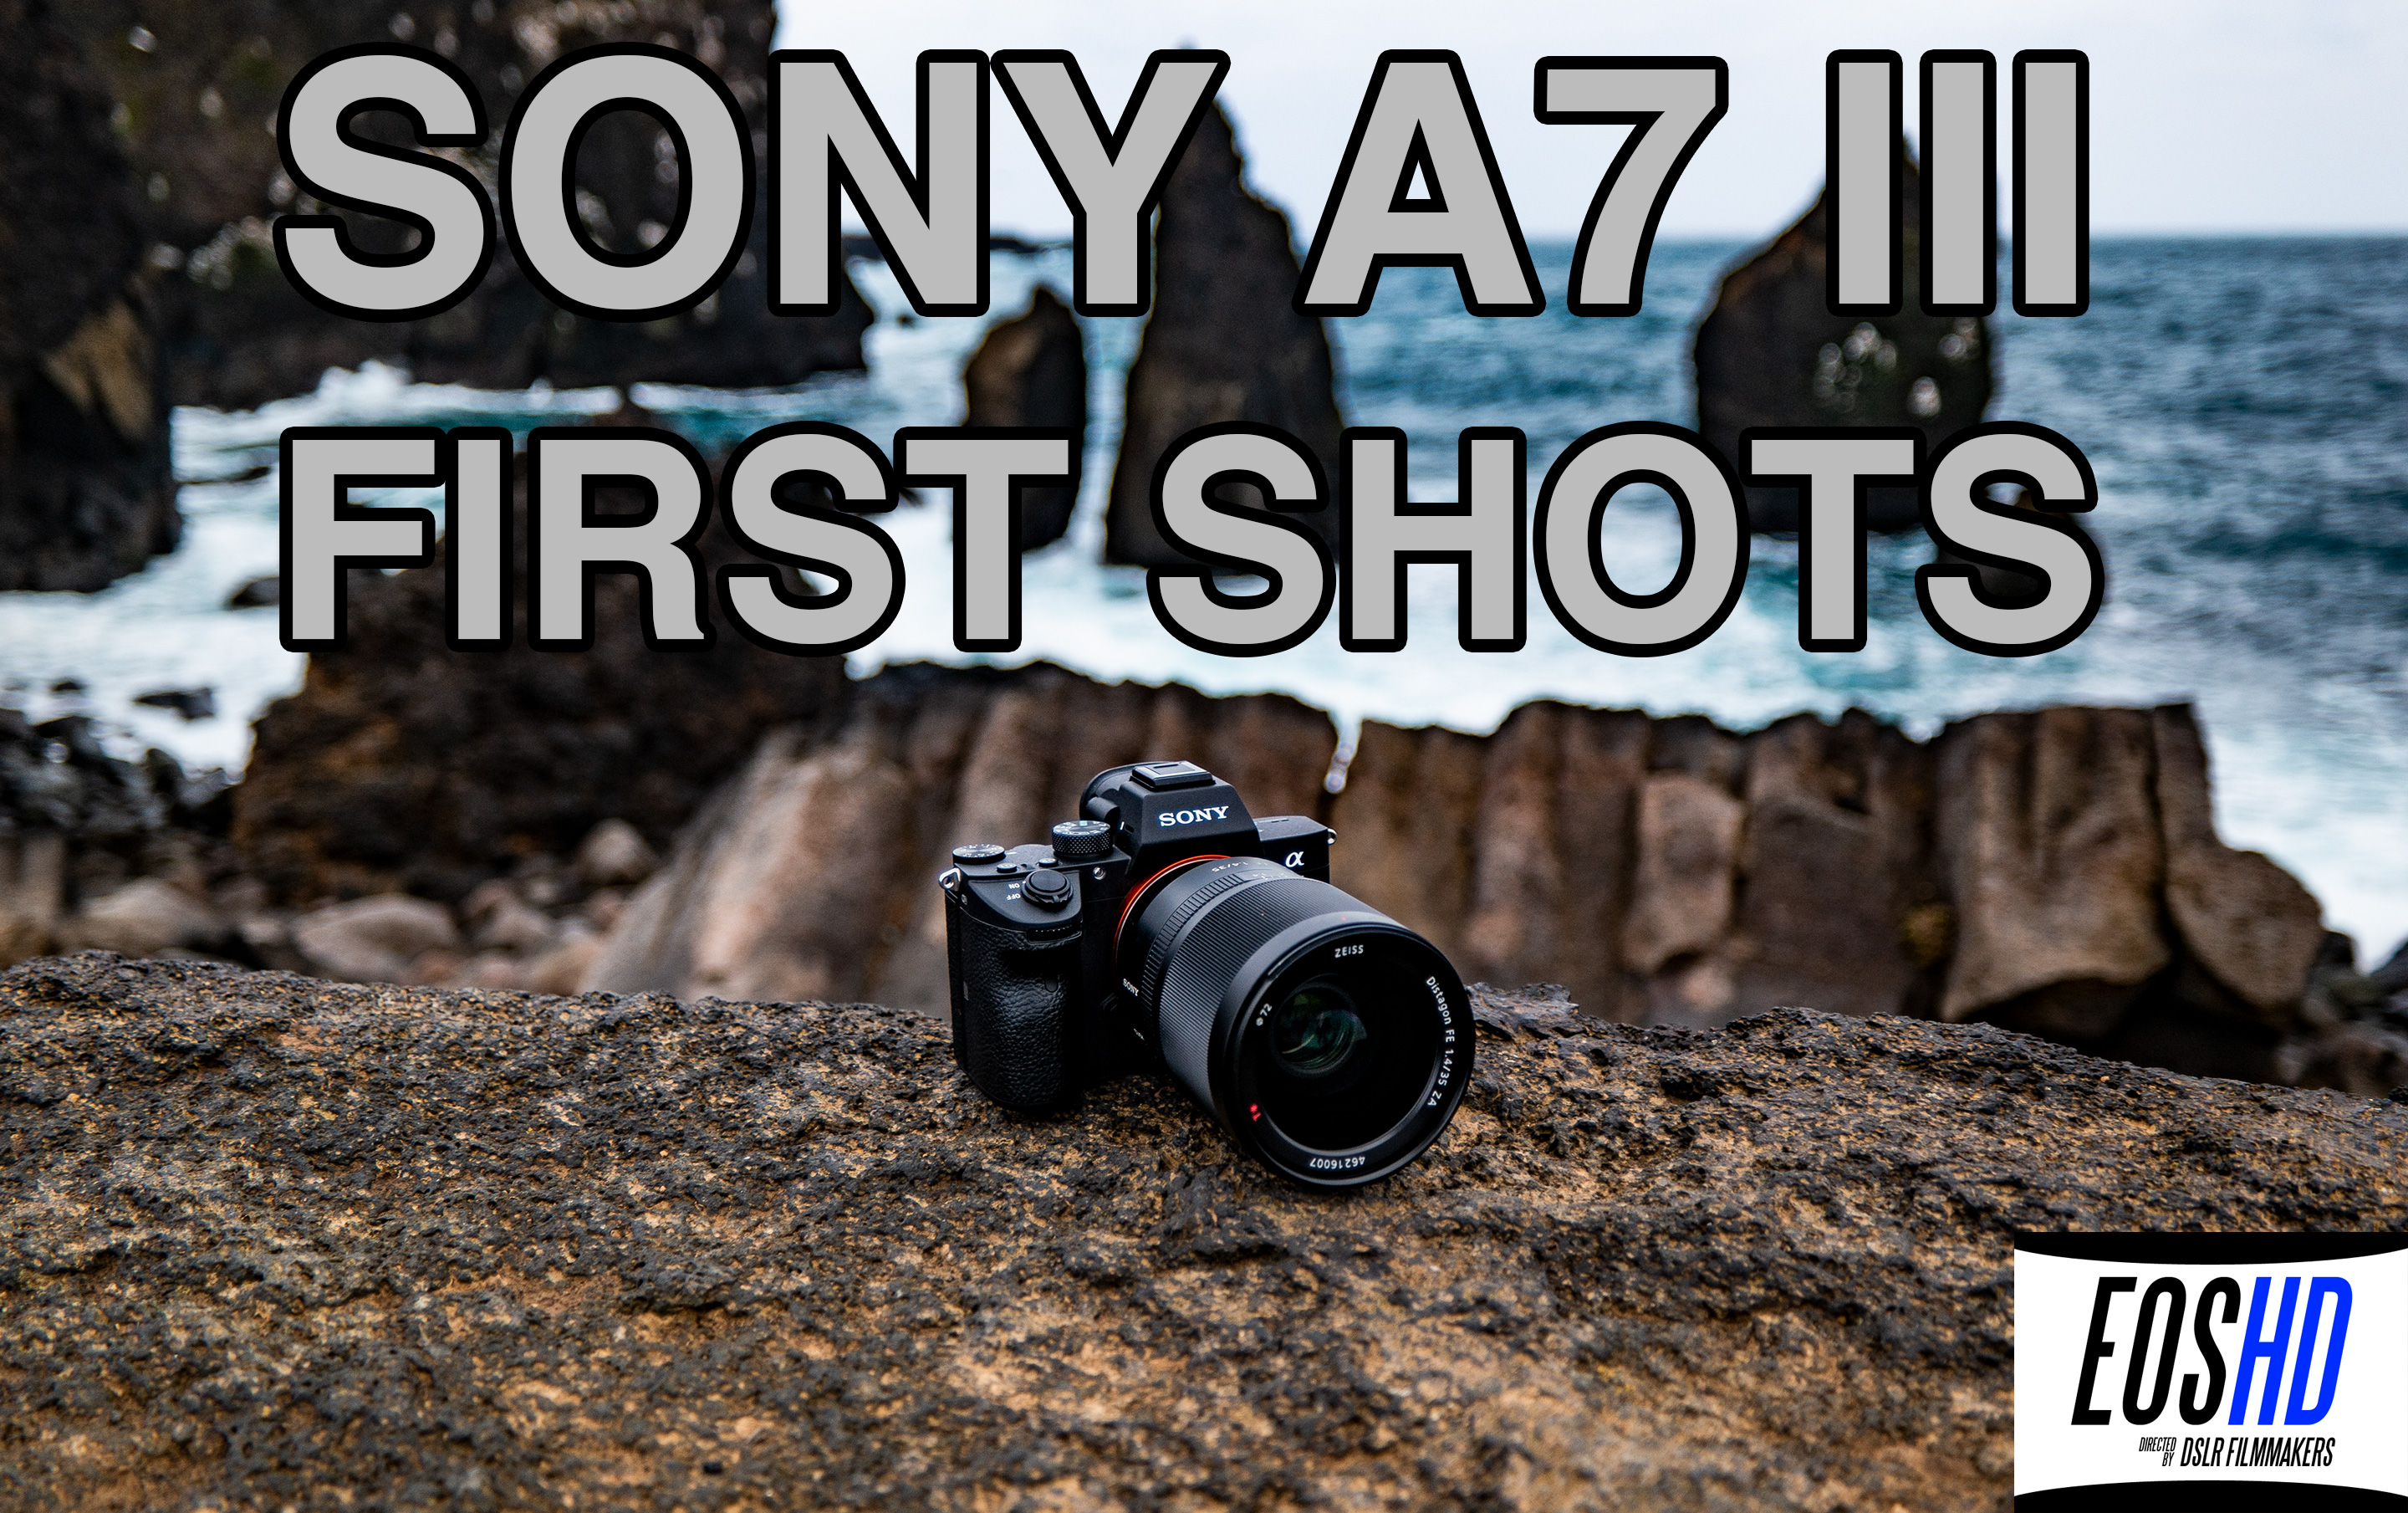 Sony A7 III first impressions - what is going on with metering in